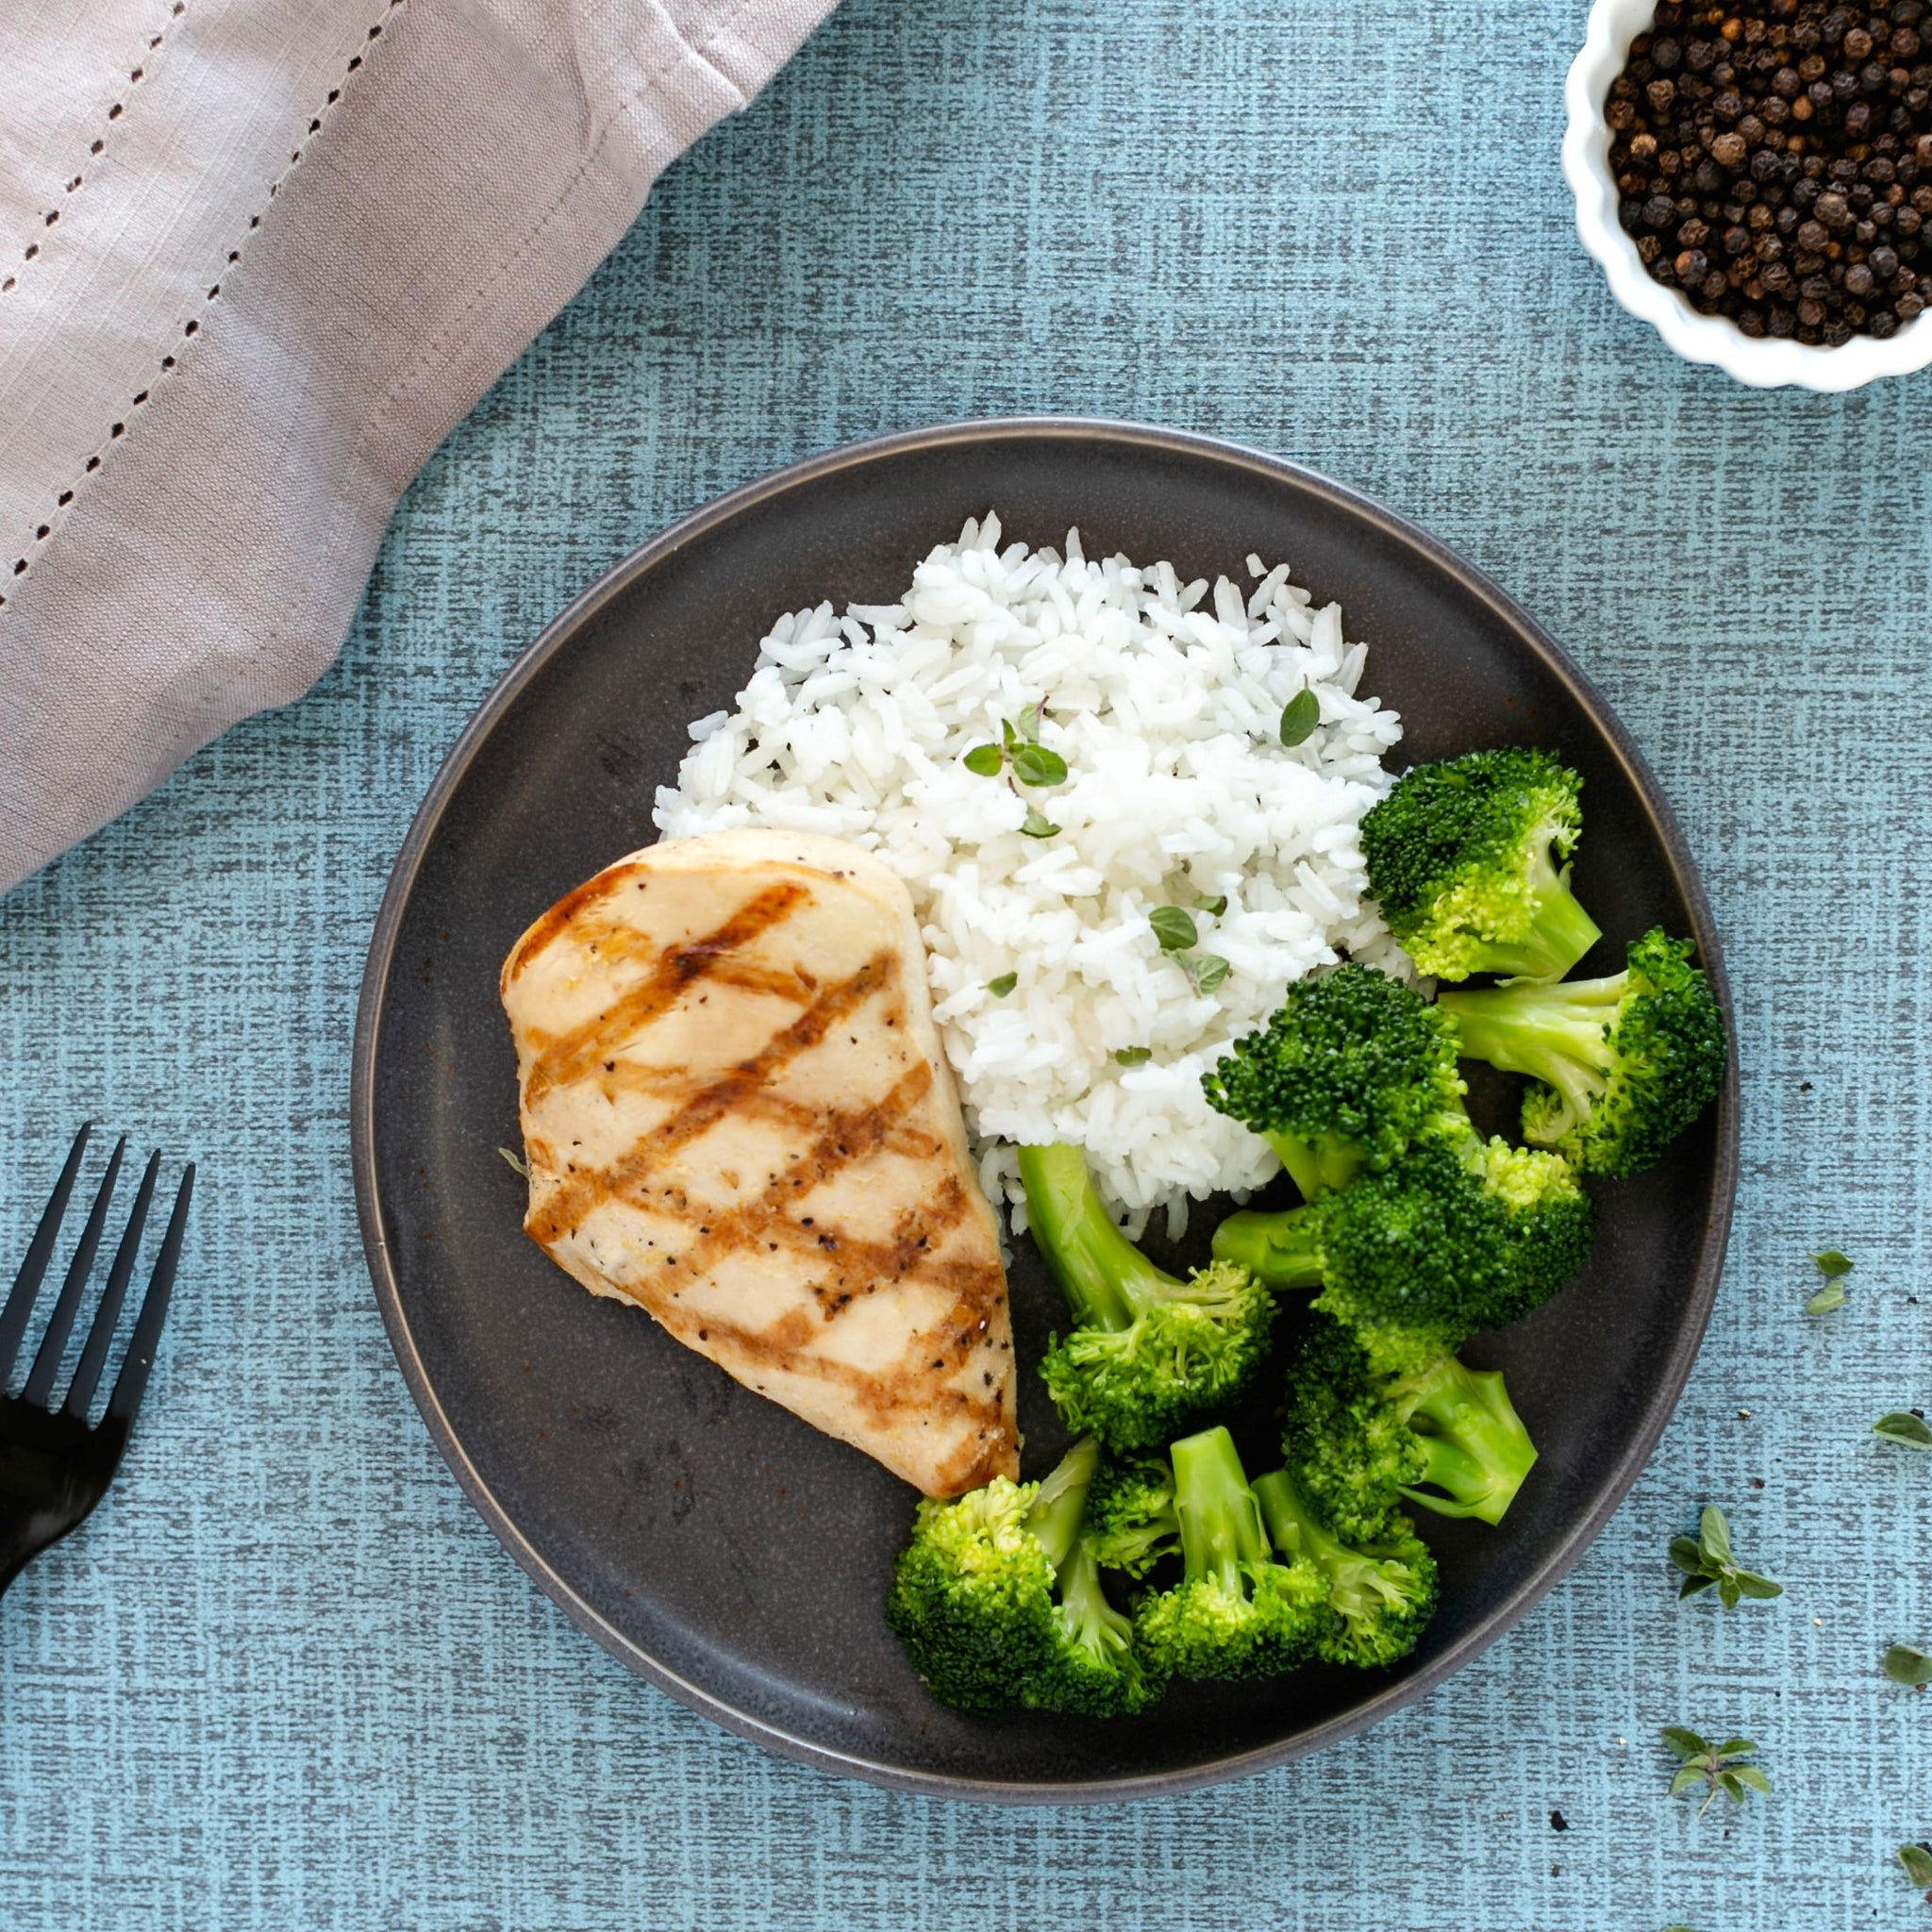 Chicken, White Rice, Broccoli